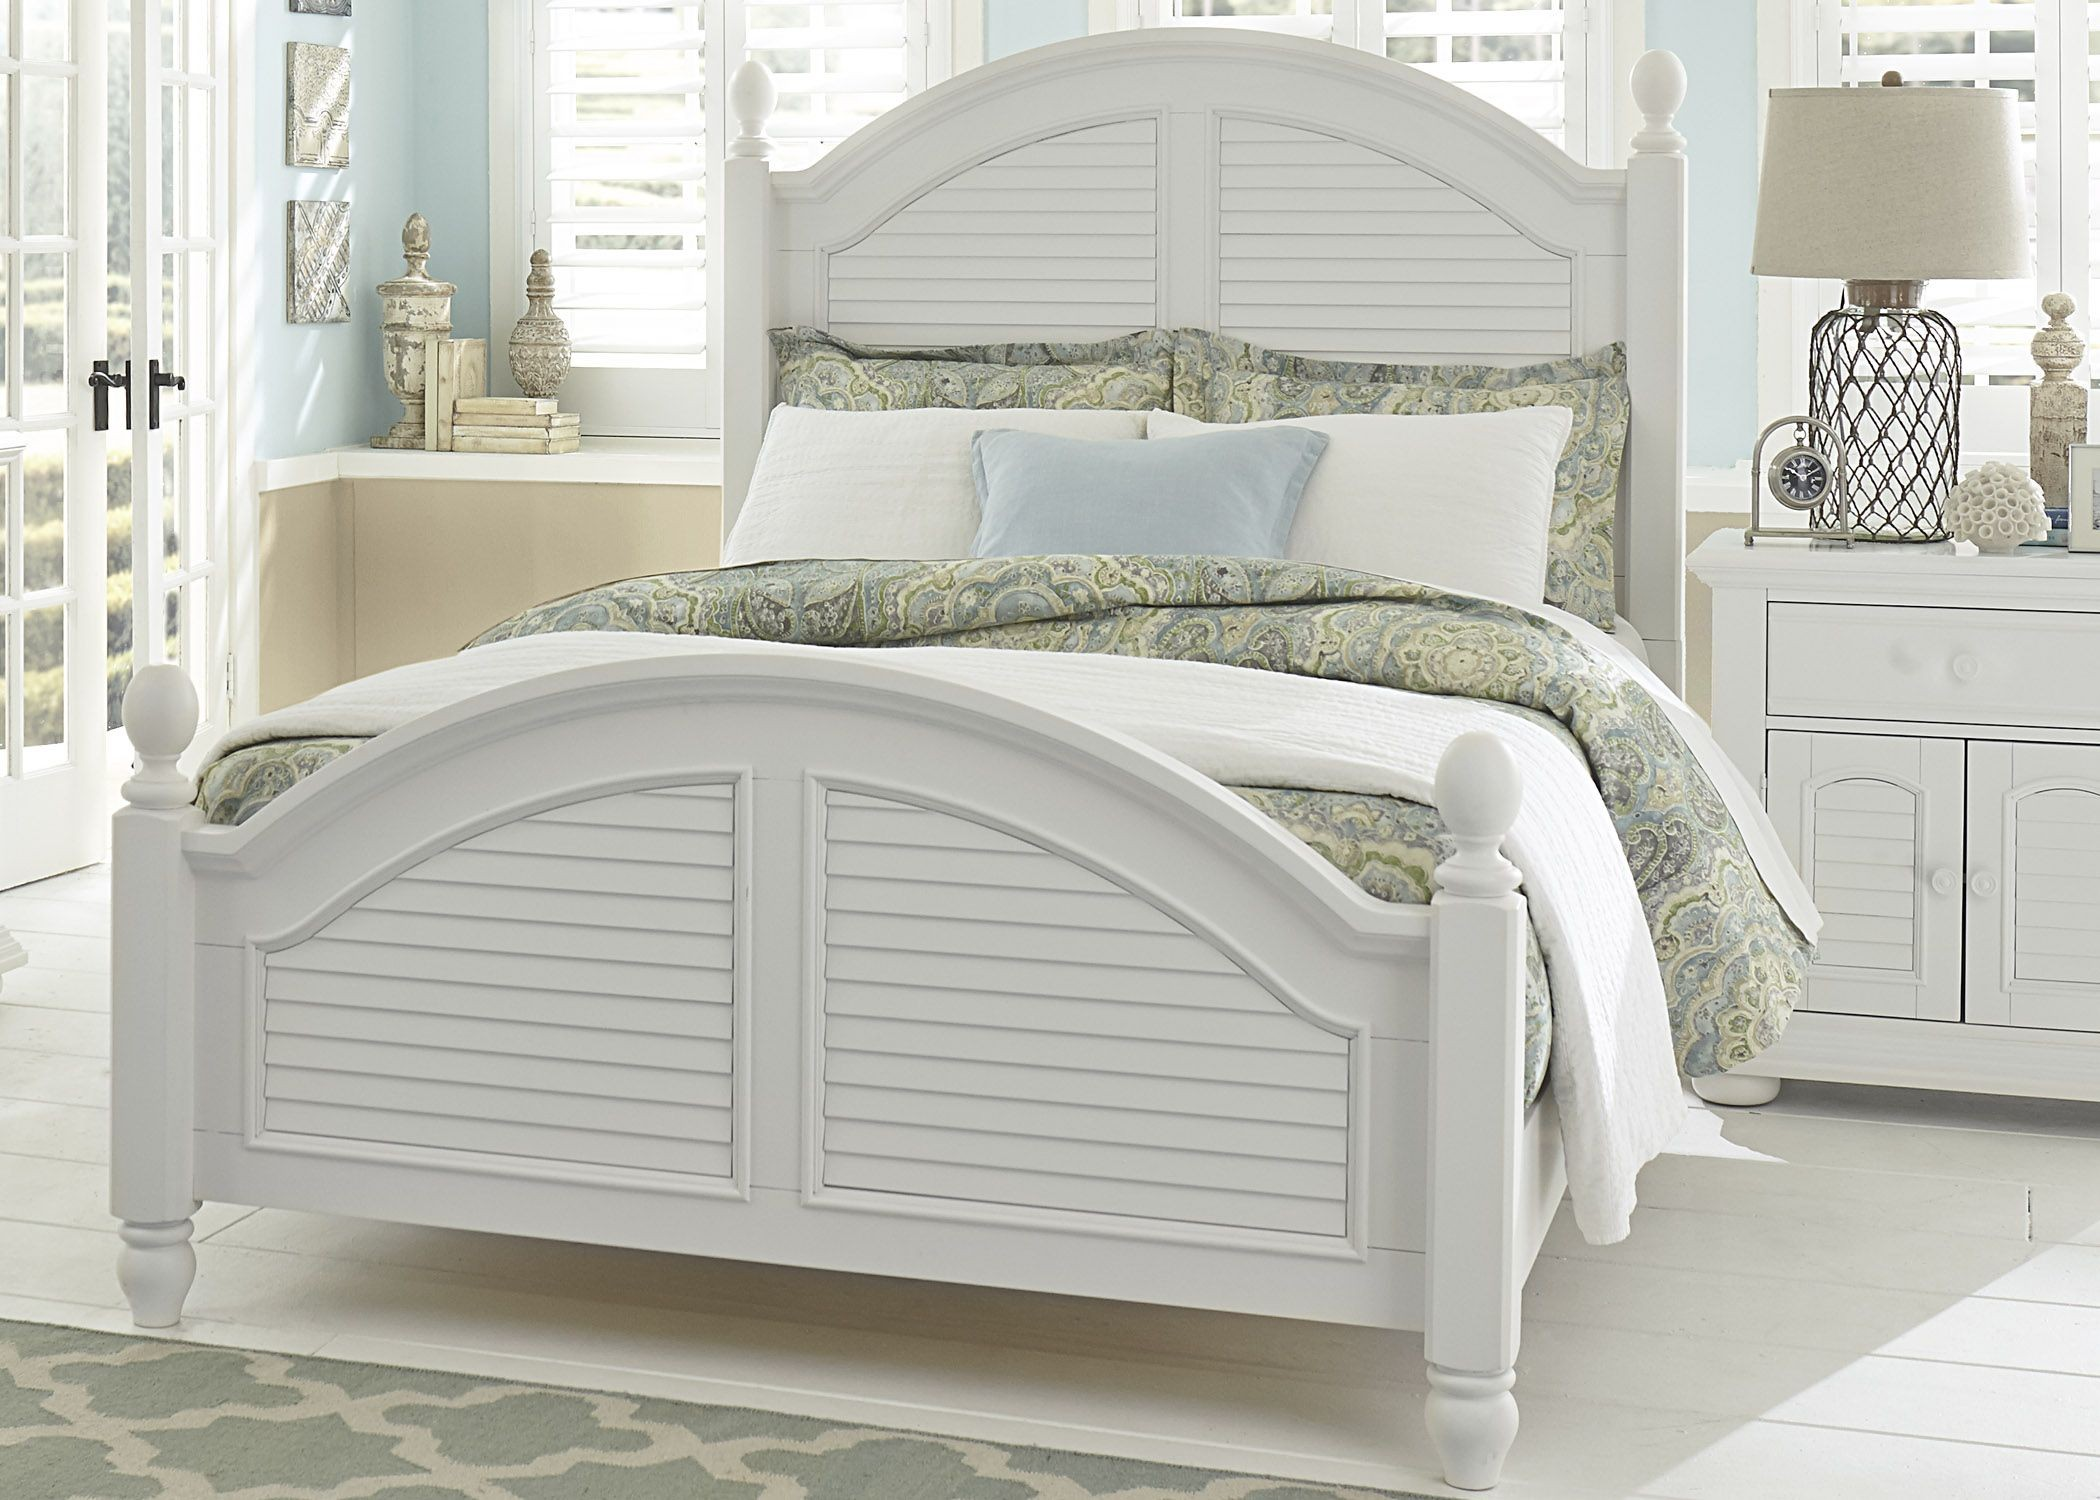 Summer House Oyster White Queen Poster Bedroom Set Media Gallery 1